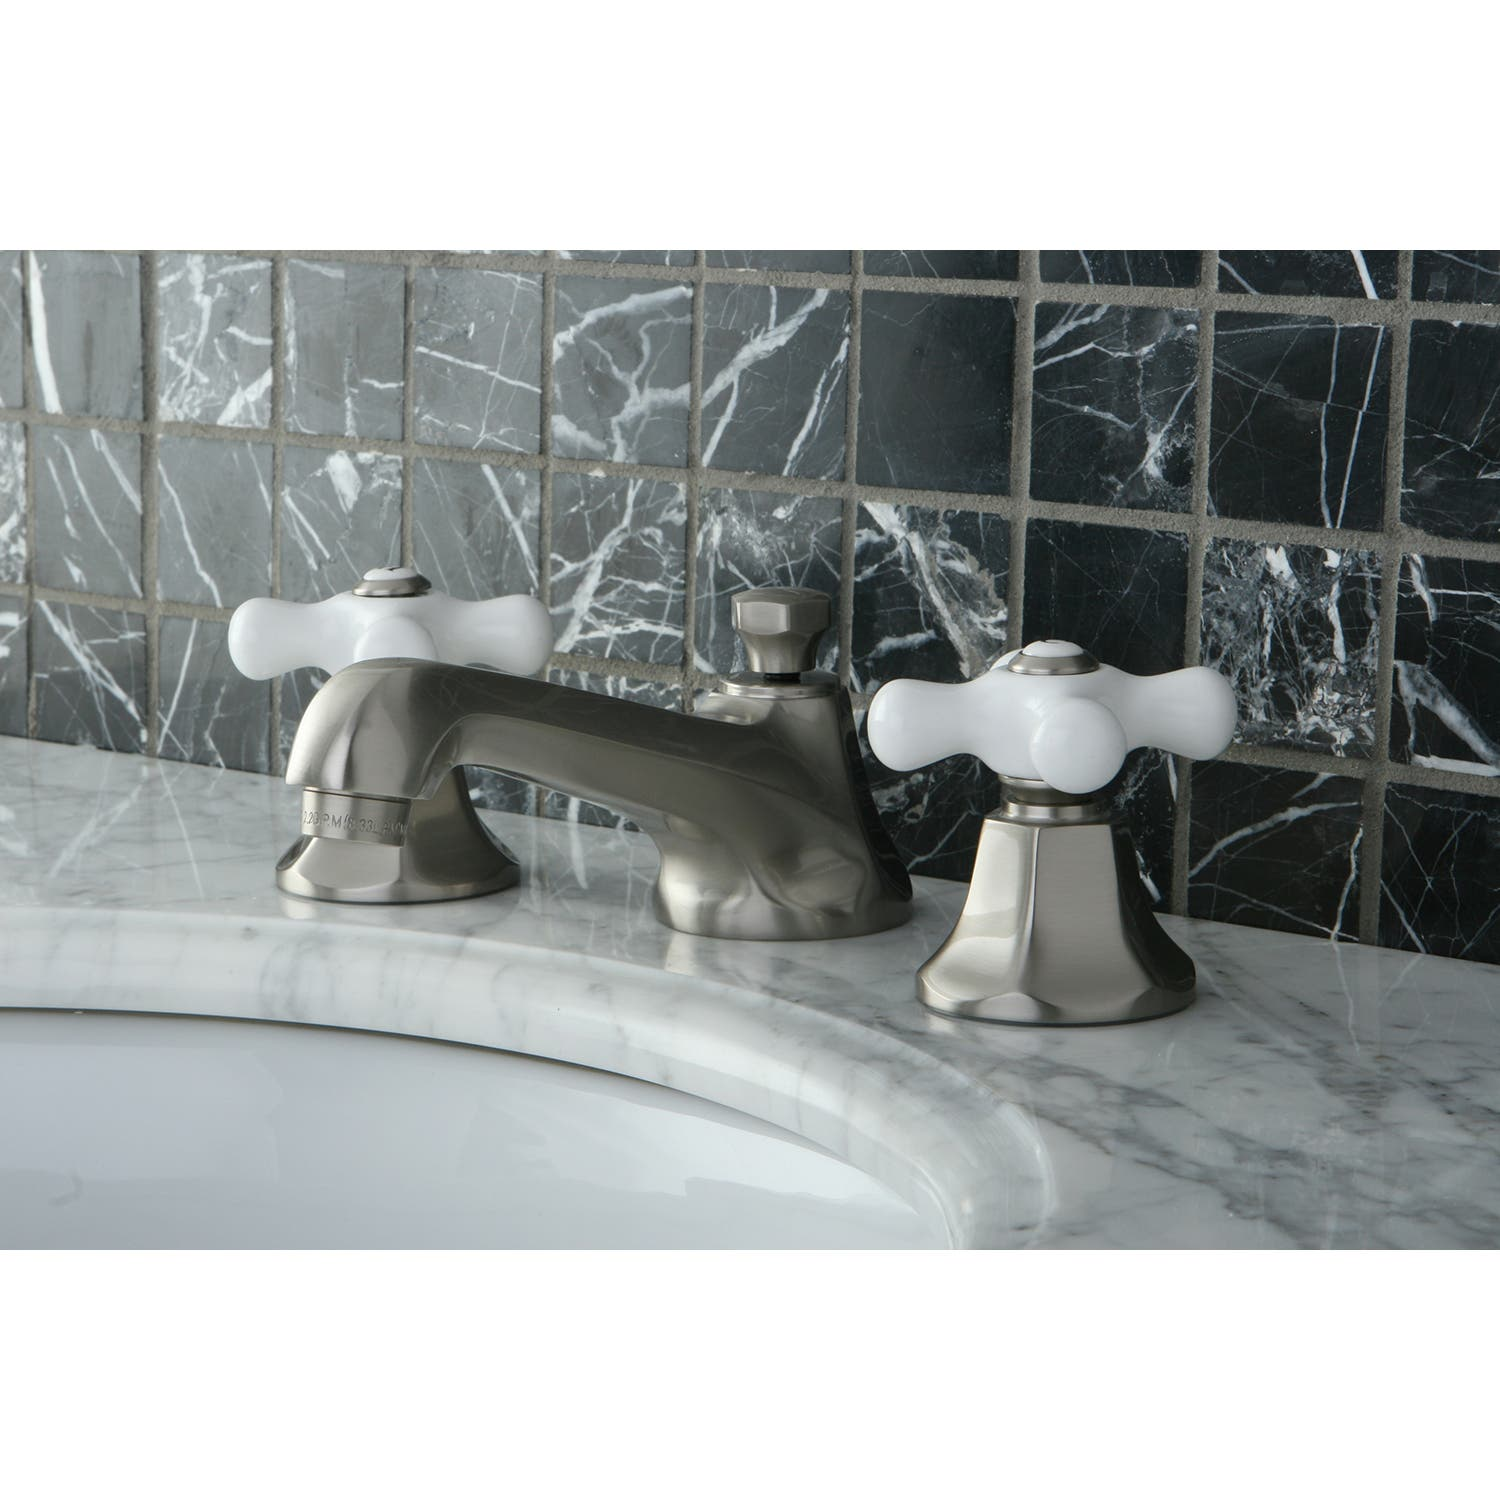 Satin Nickel Kingston Brass KS4468PX Metropolitan Widespread Lavatory Faucet with Porcelain Cross Handle